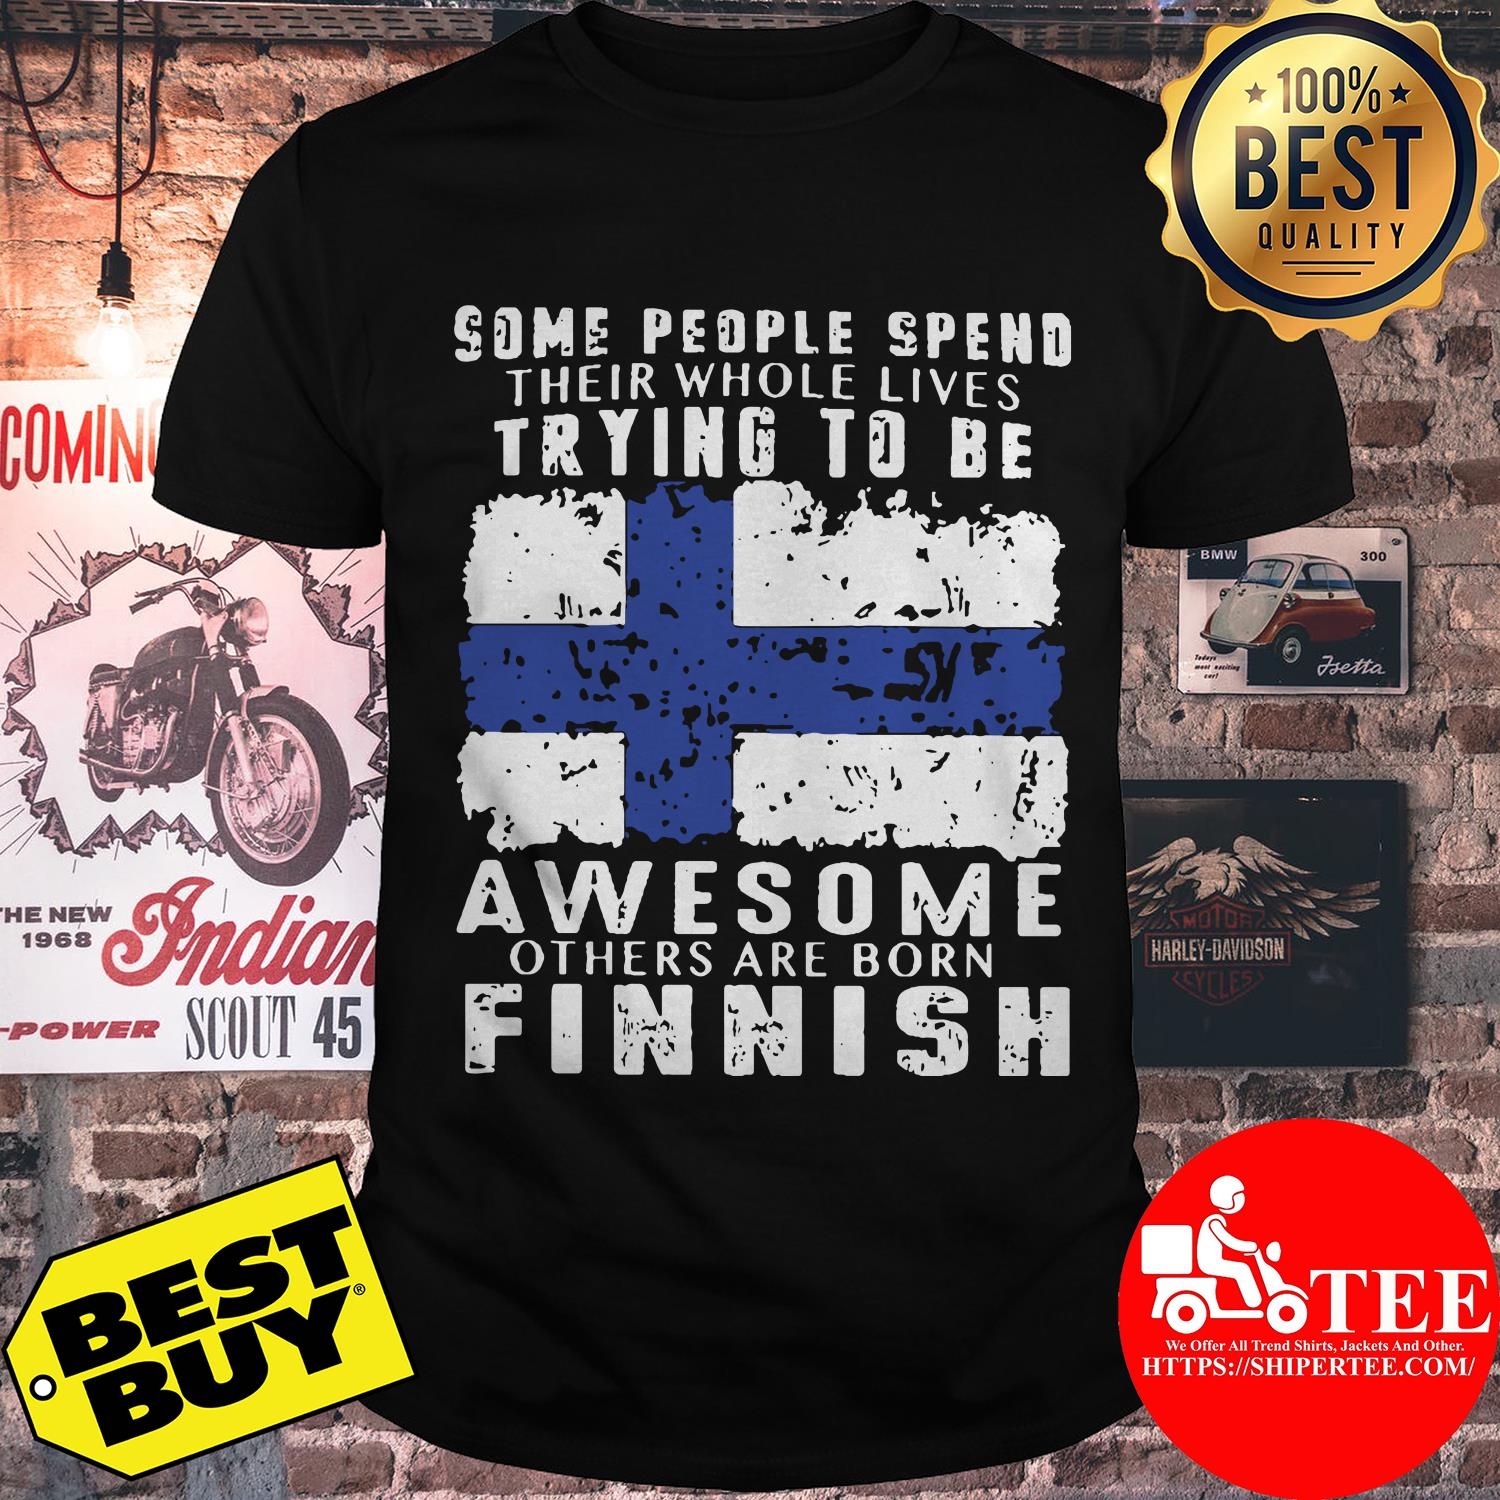 Some people spend their whole lives trying to be awesome others are born finish shirt